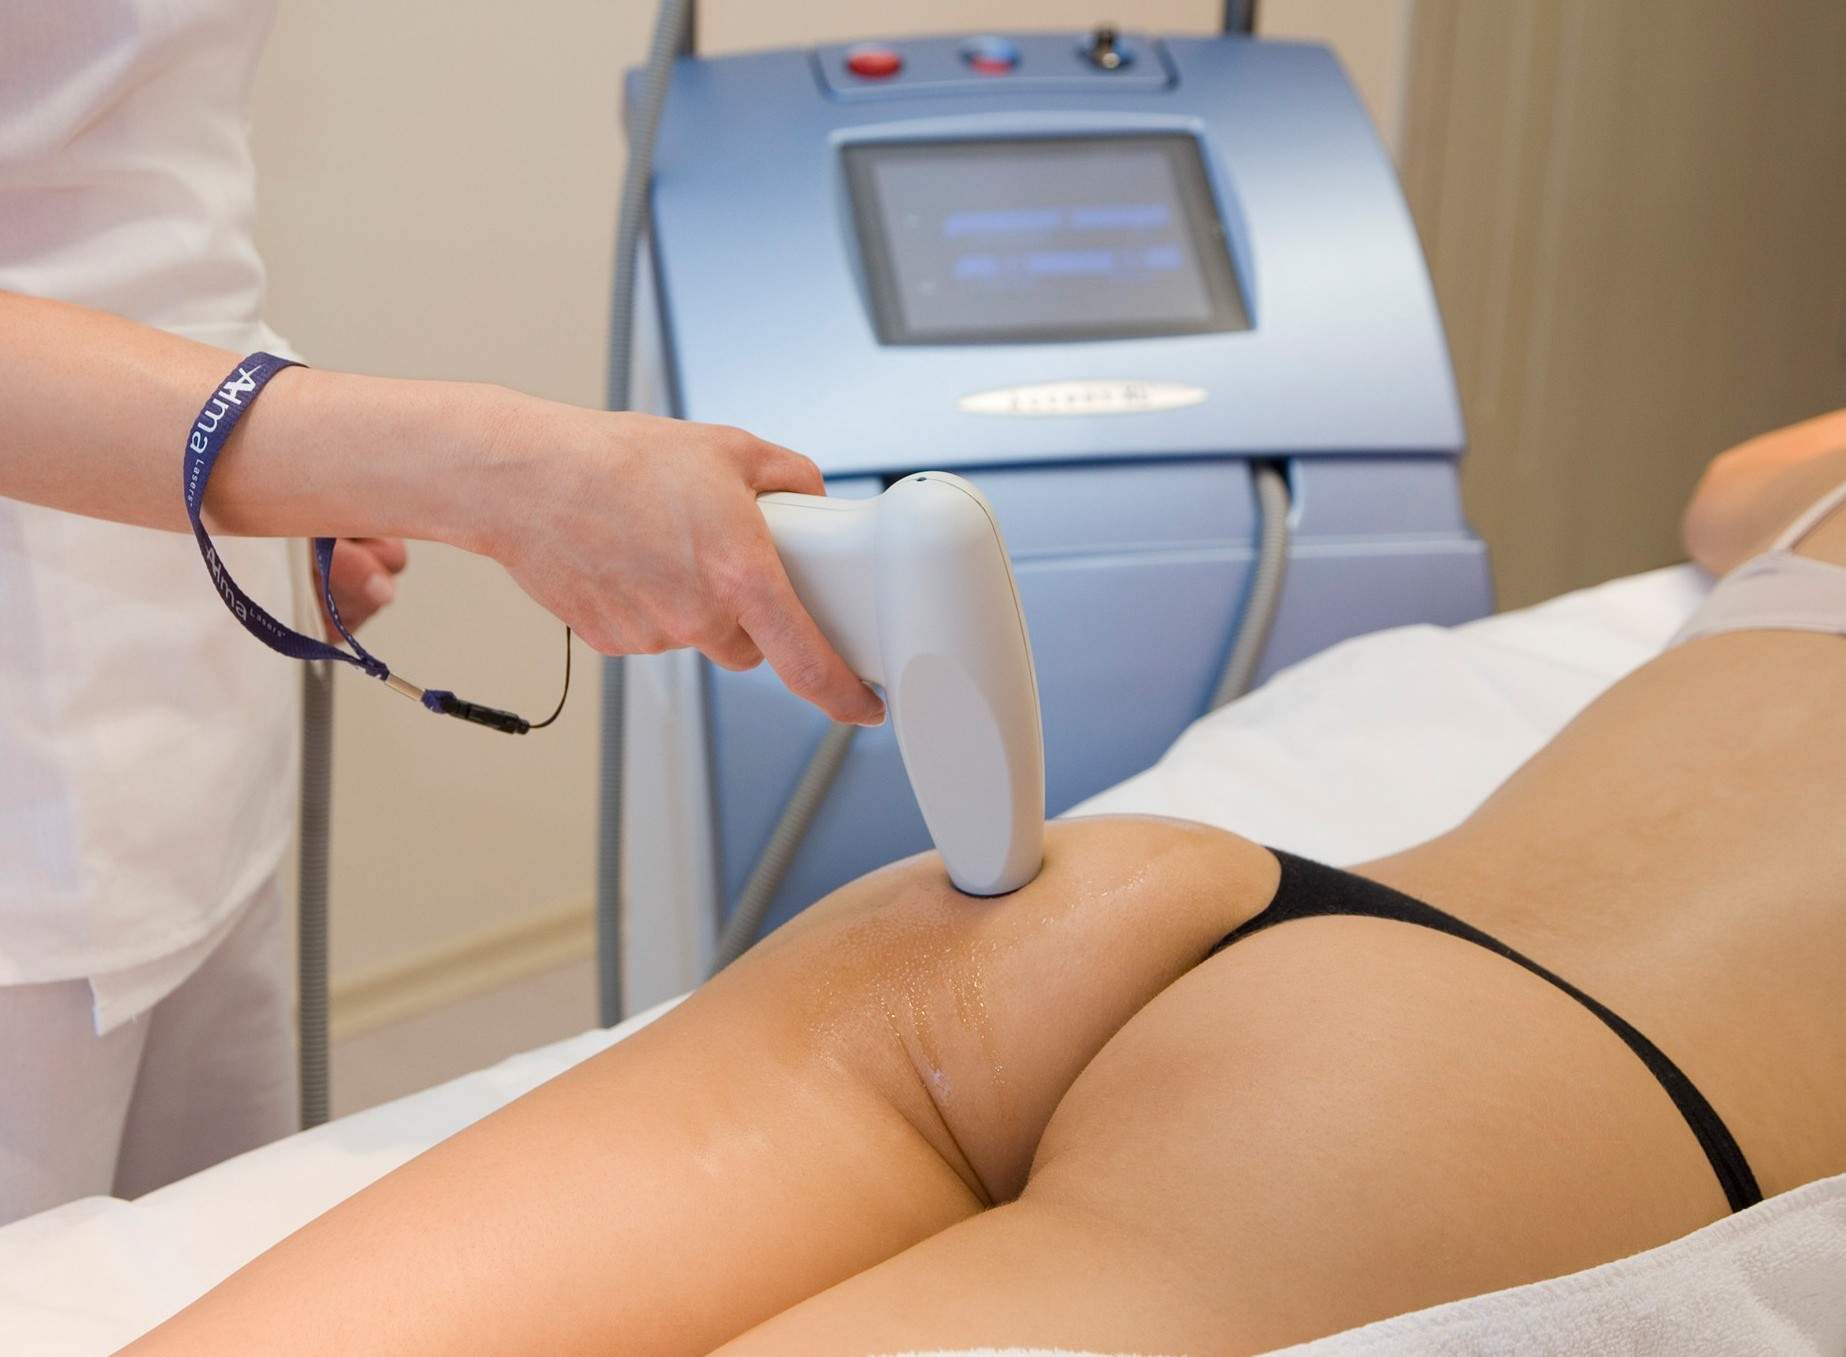 Accent XL cellulite treatment